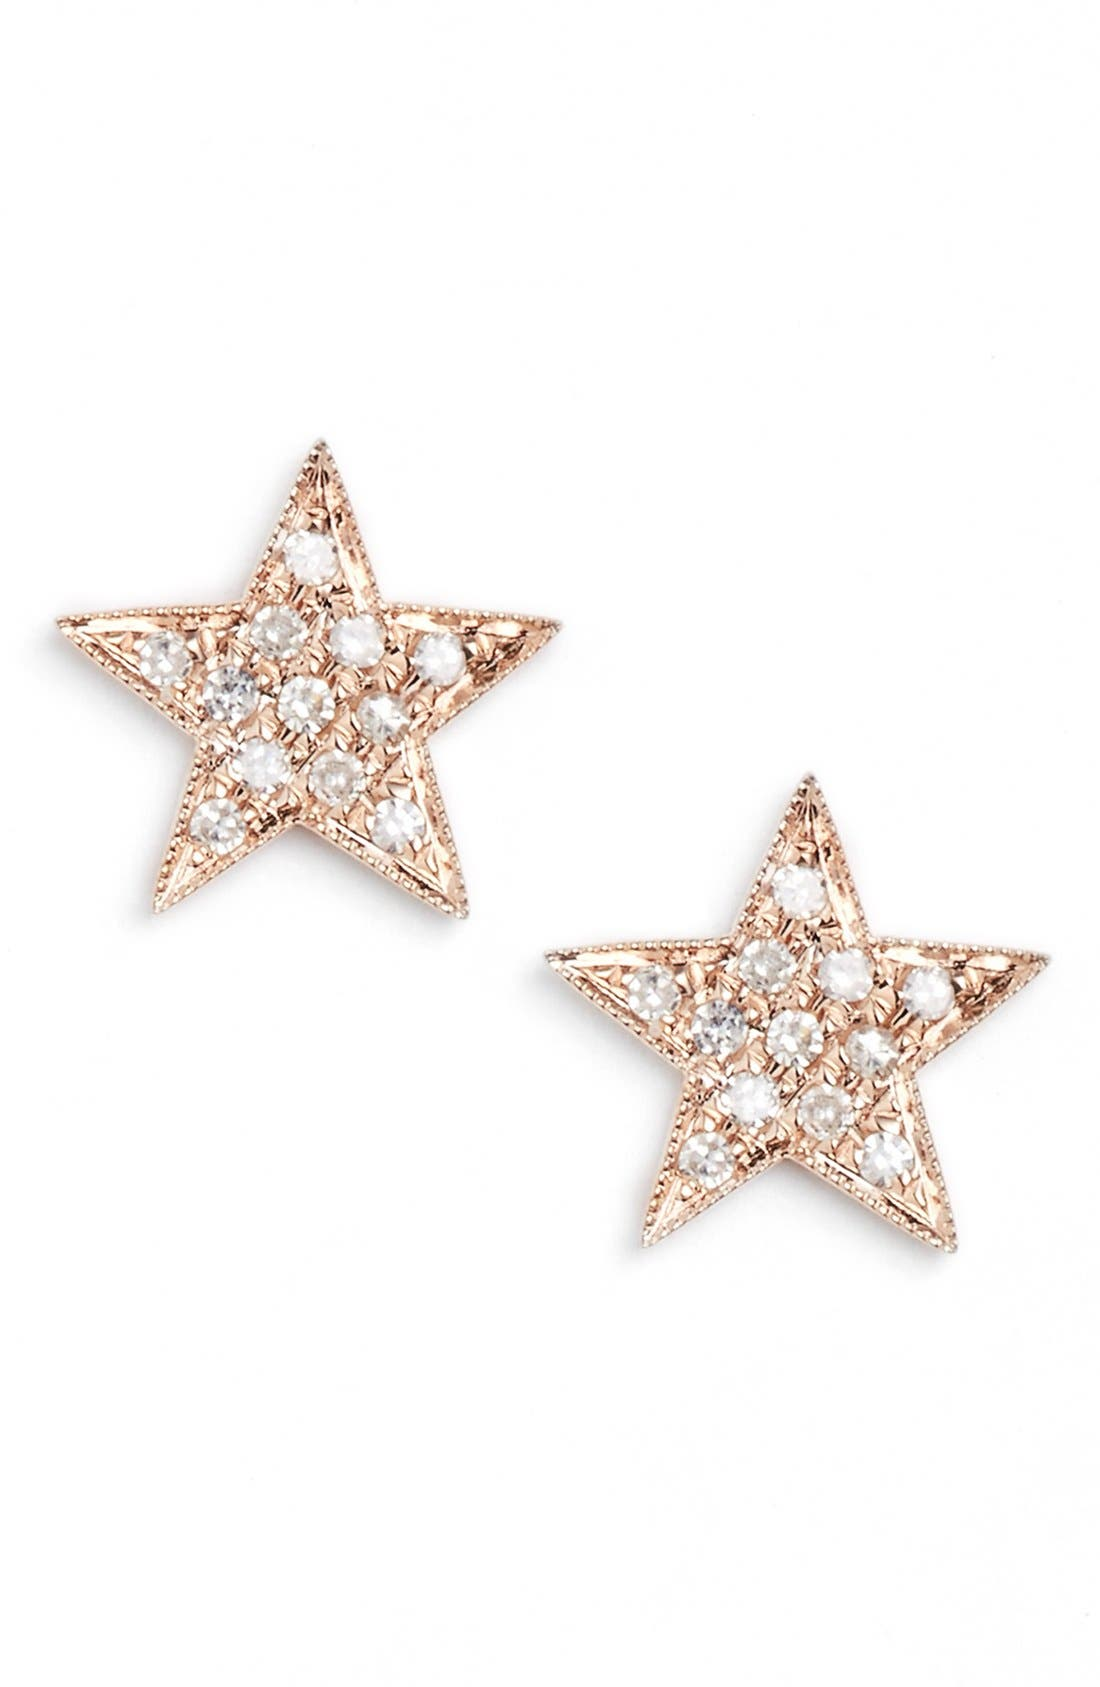 Dana Rebecca Designs 'Julianne Himiko' Diamond Star Stud Earrings